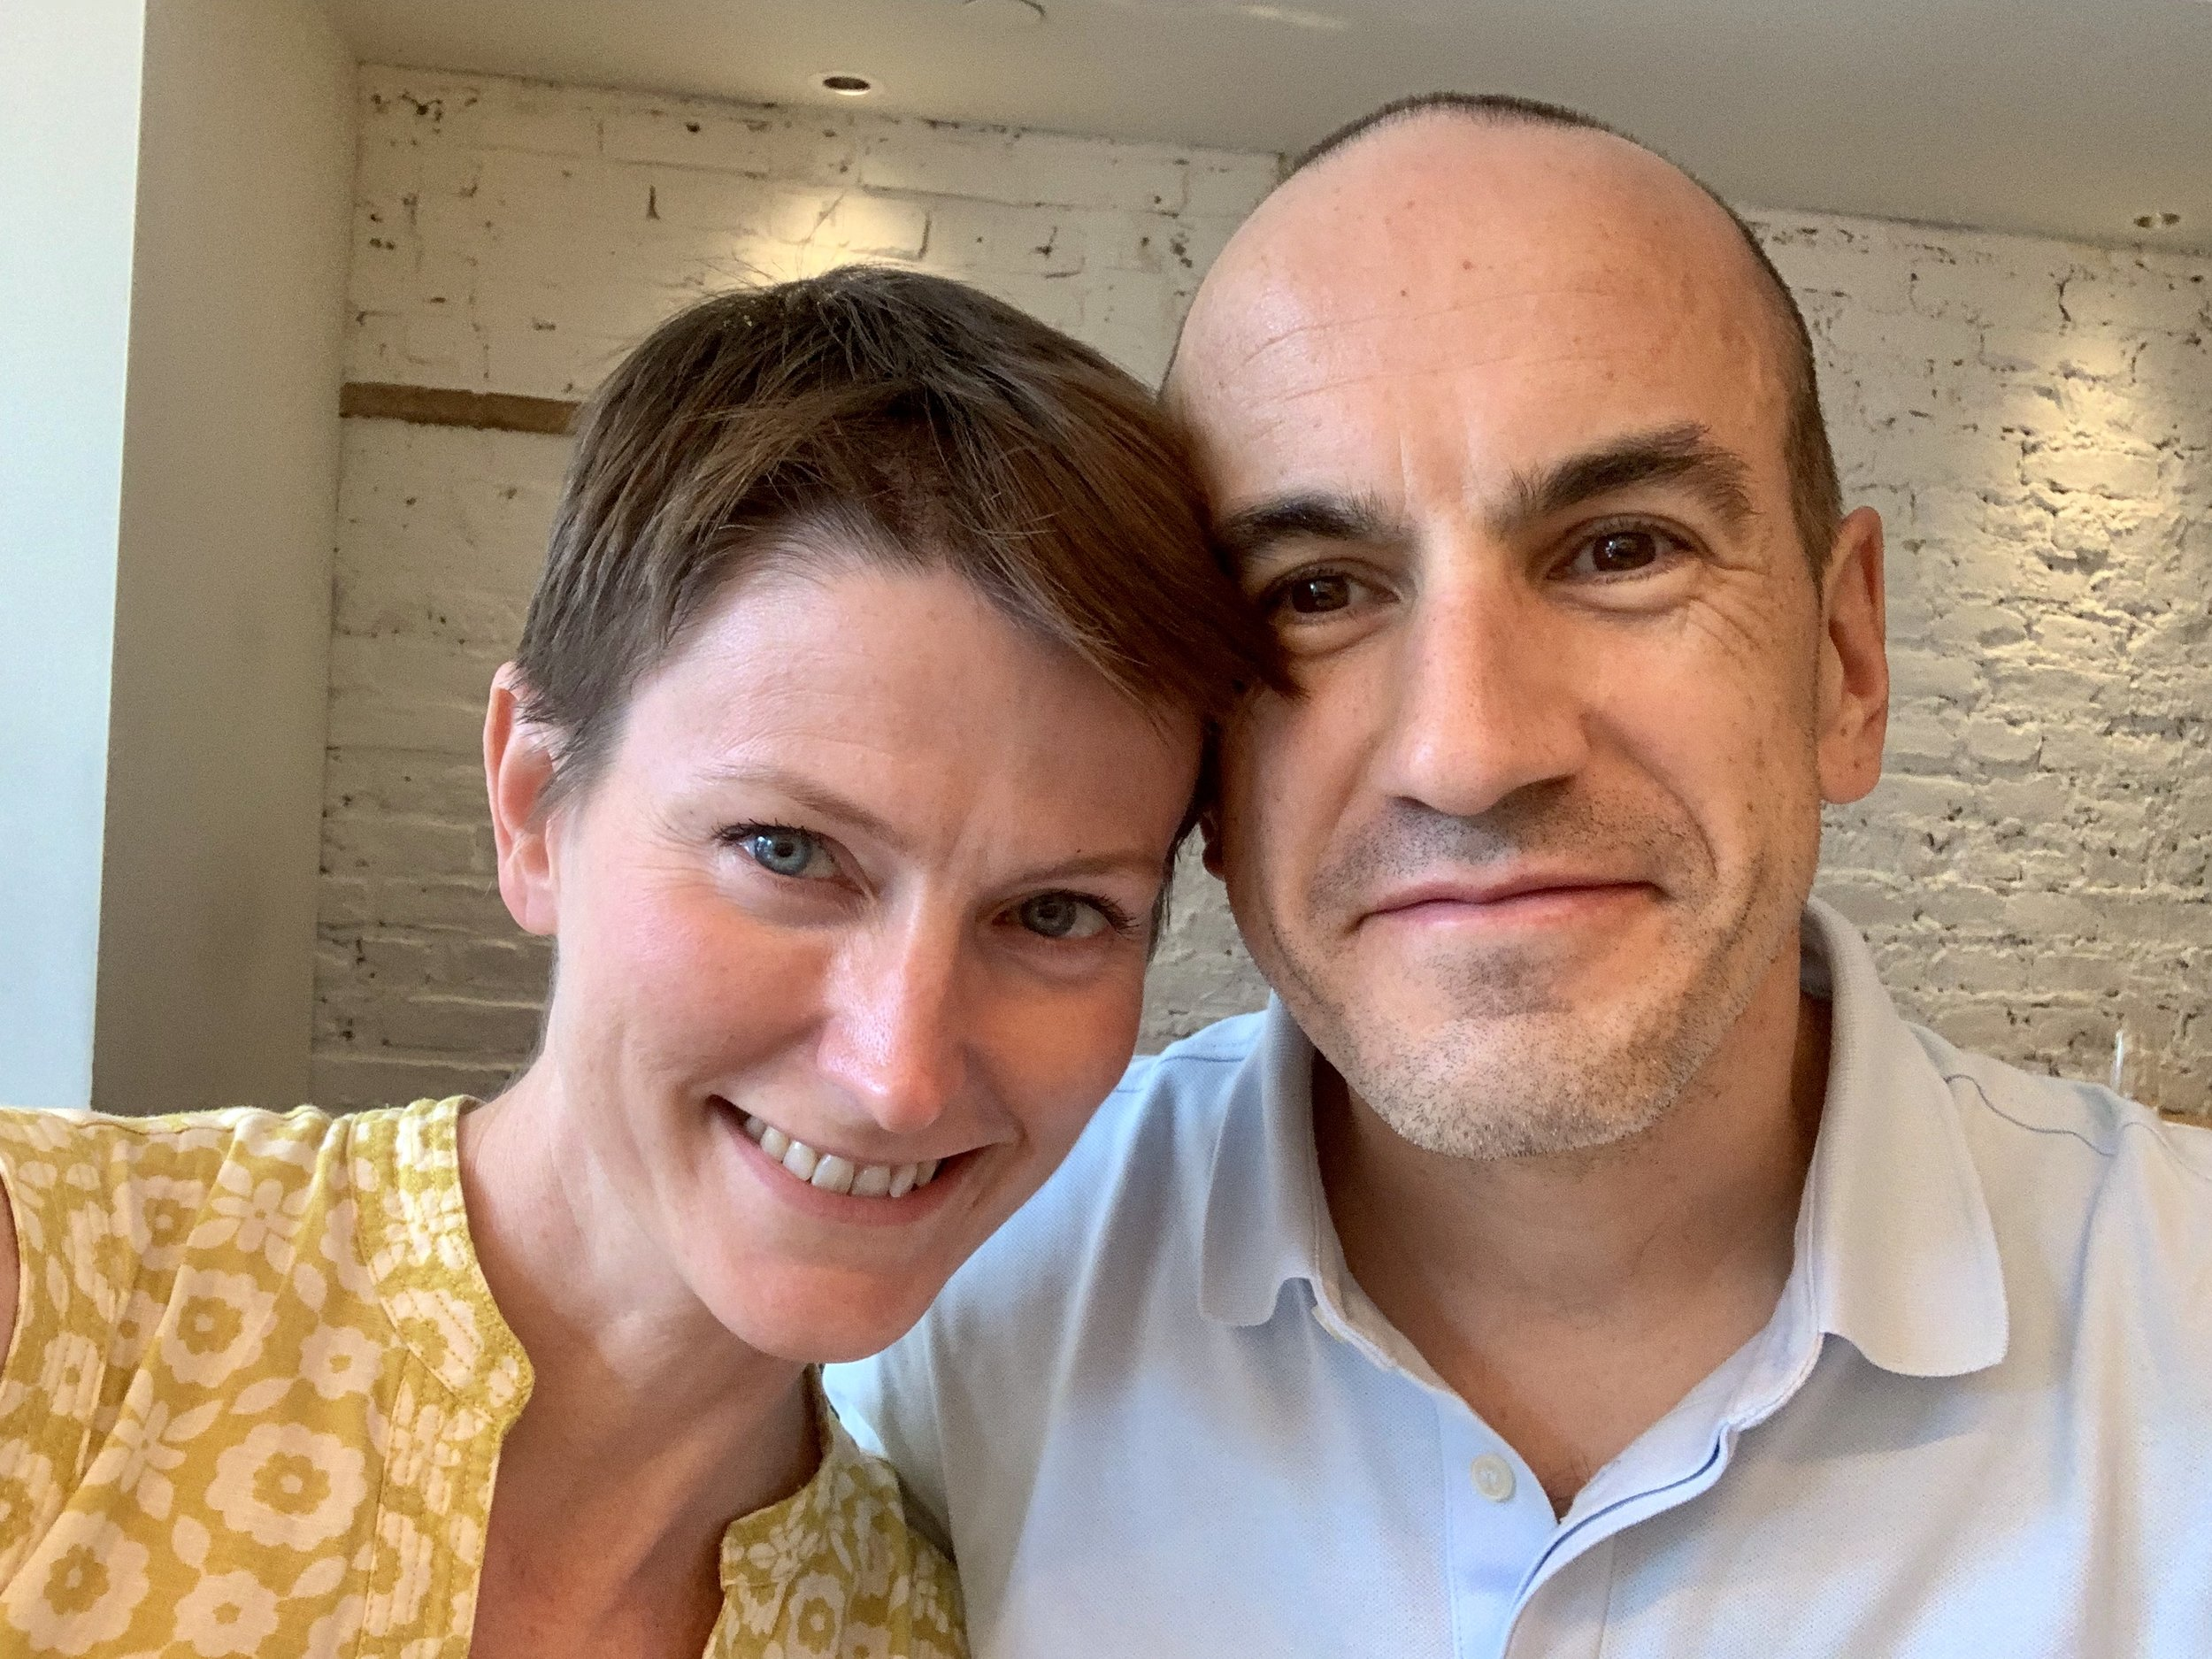 Arnaud and me at brunch at Loring Place. New York City, New York. July 28, 2019.